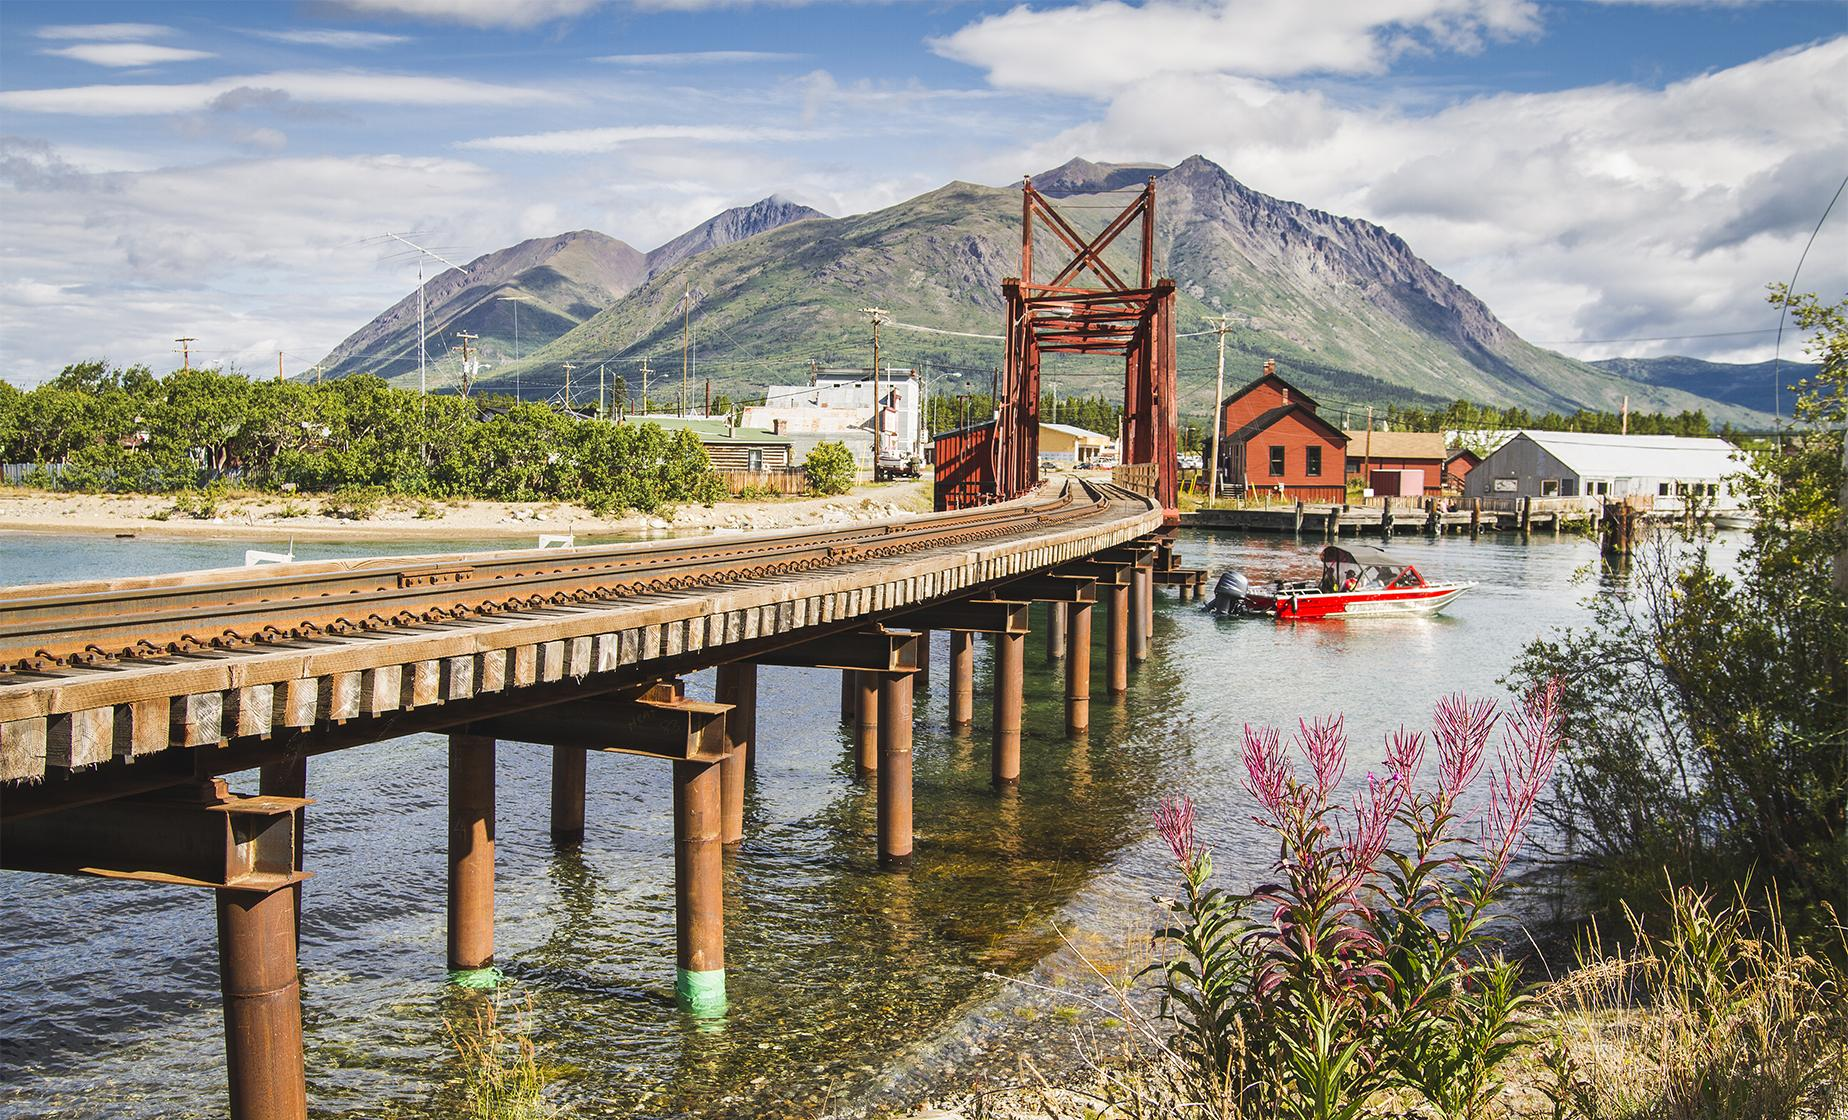 Sightseeing Tour in the Yukon to White Pass Summit & Klondike Highway from Skagway, Alaska